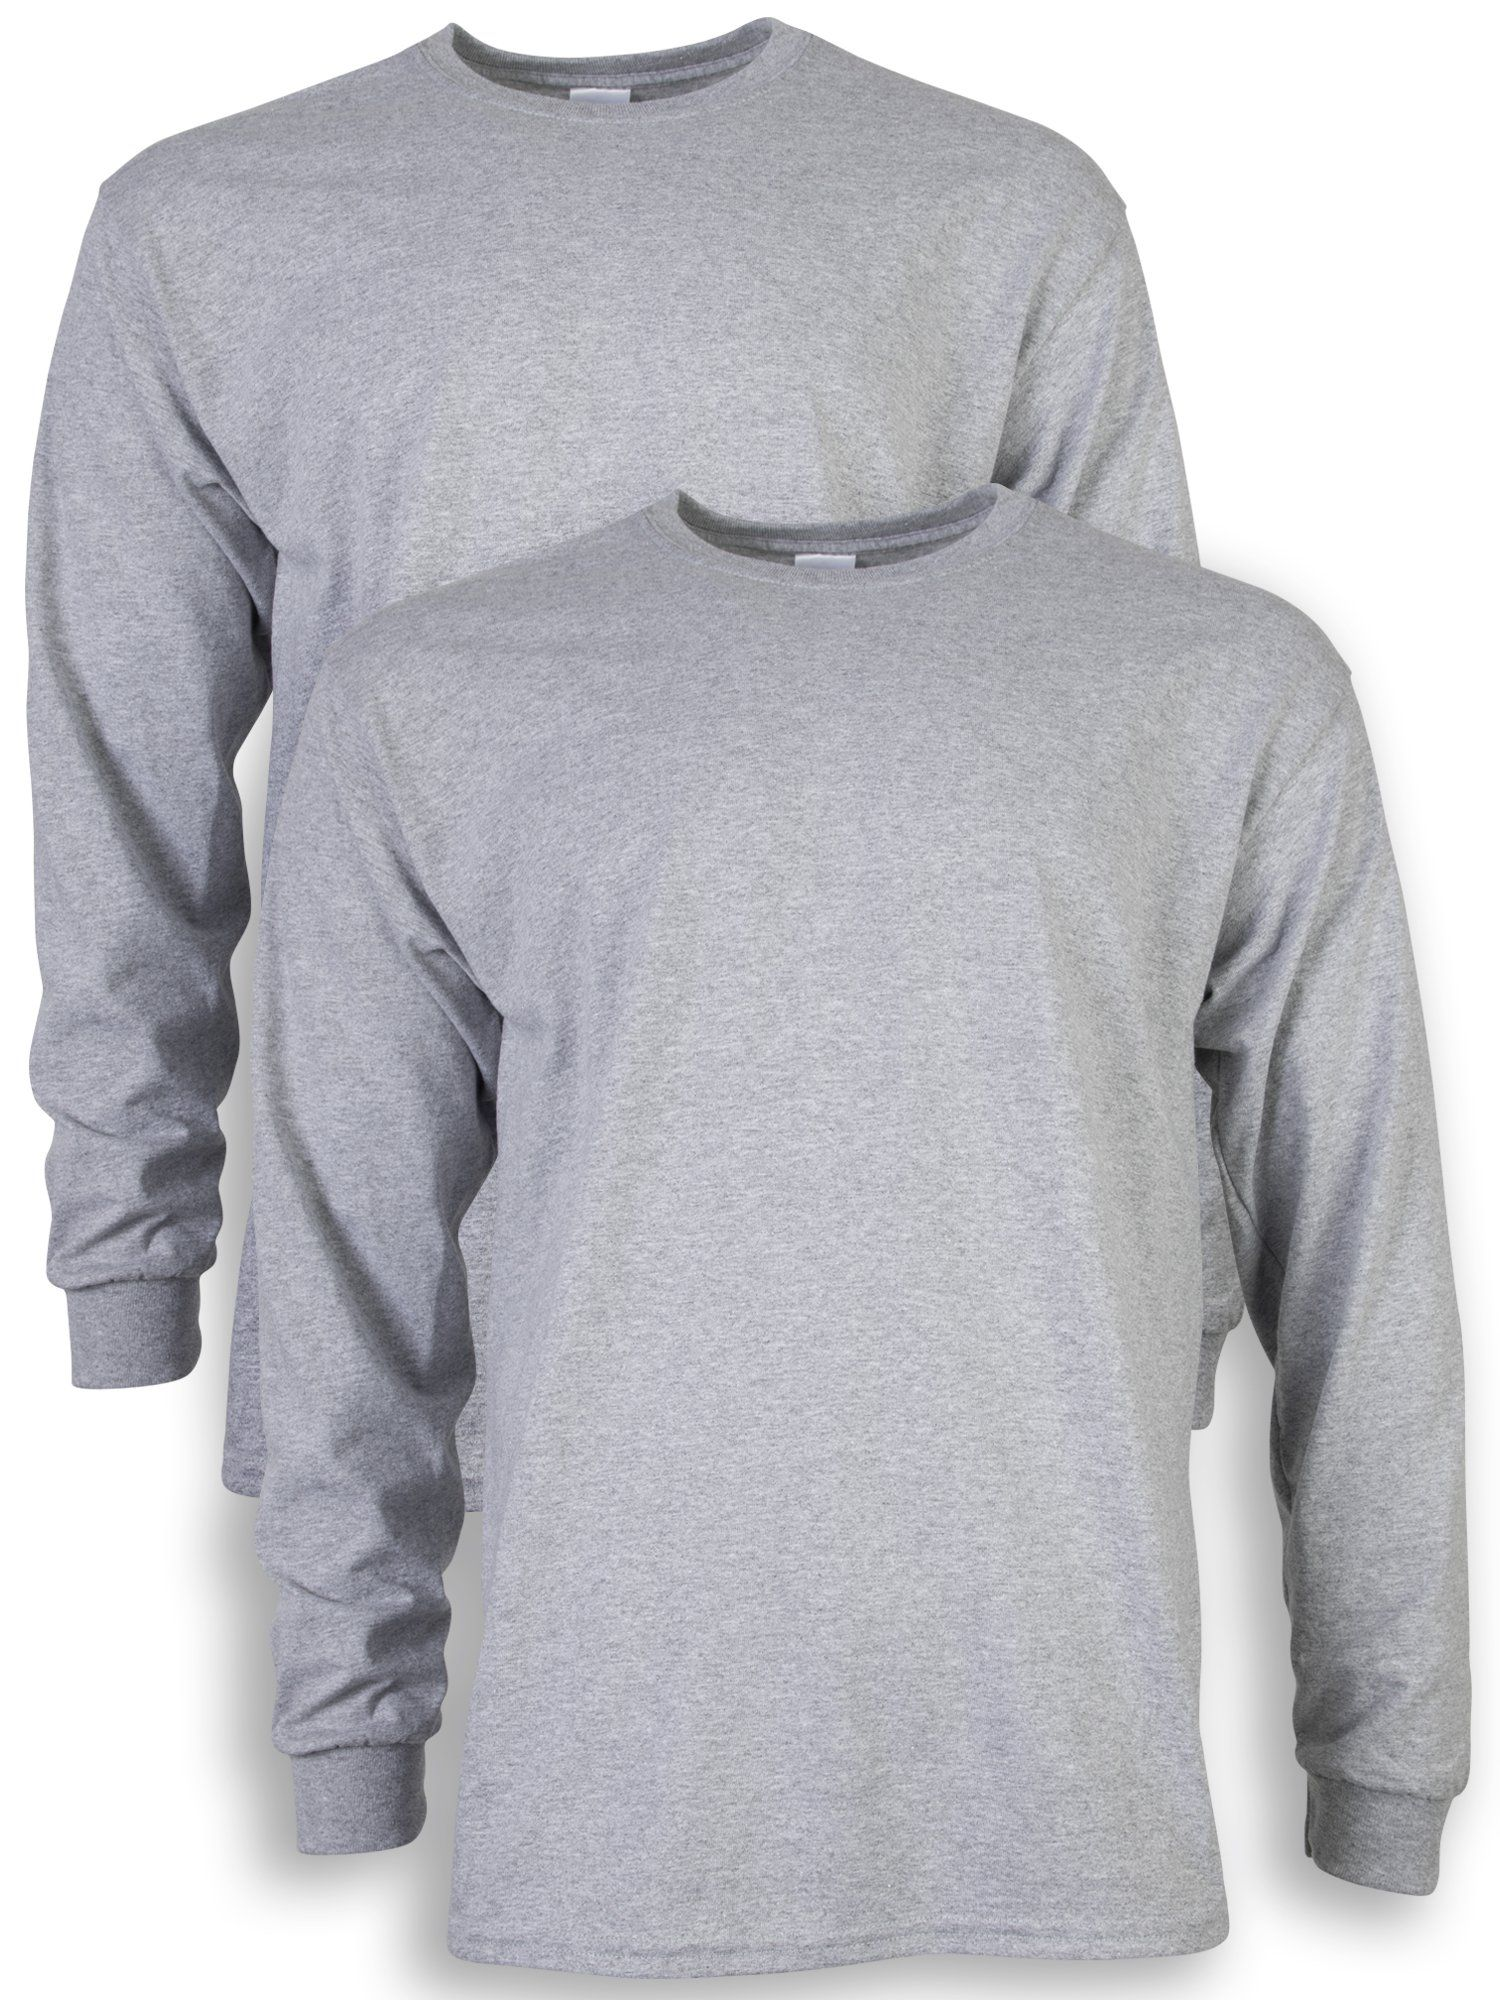 c6bddf19245 Gildan Mens Ultra Cotton Adult Long Sleeve TShirt 2Pack Sport Grey XLarge  -- Visit the image link more details. Note  It s an affiliate link to  Amazon   ...